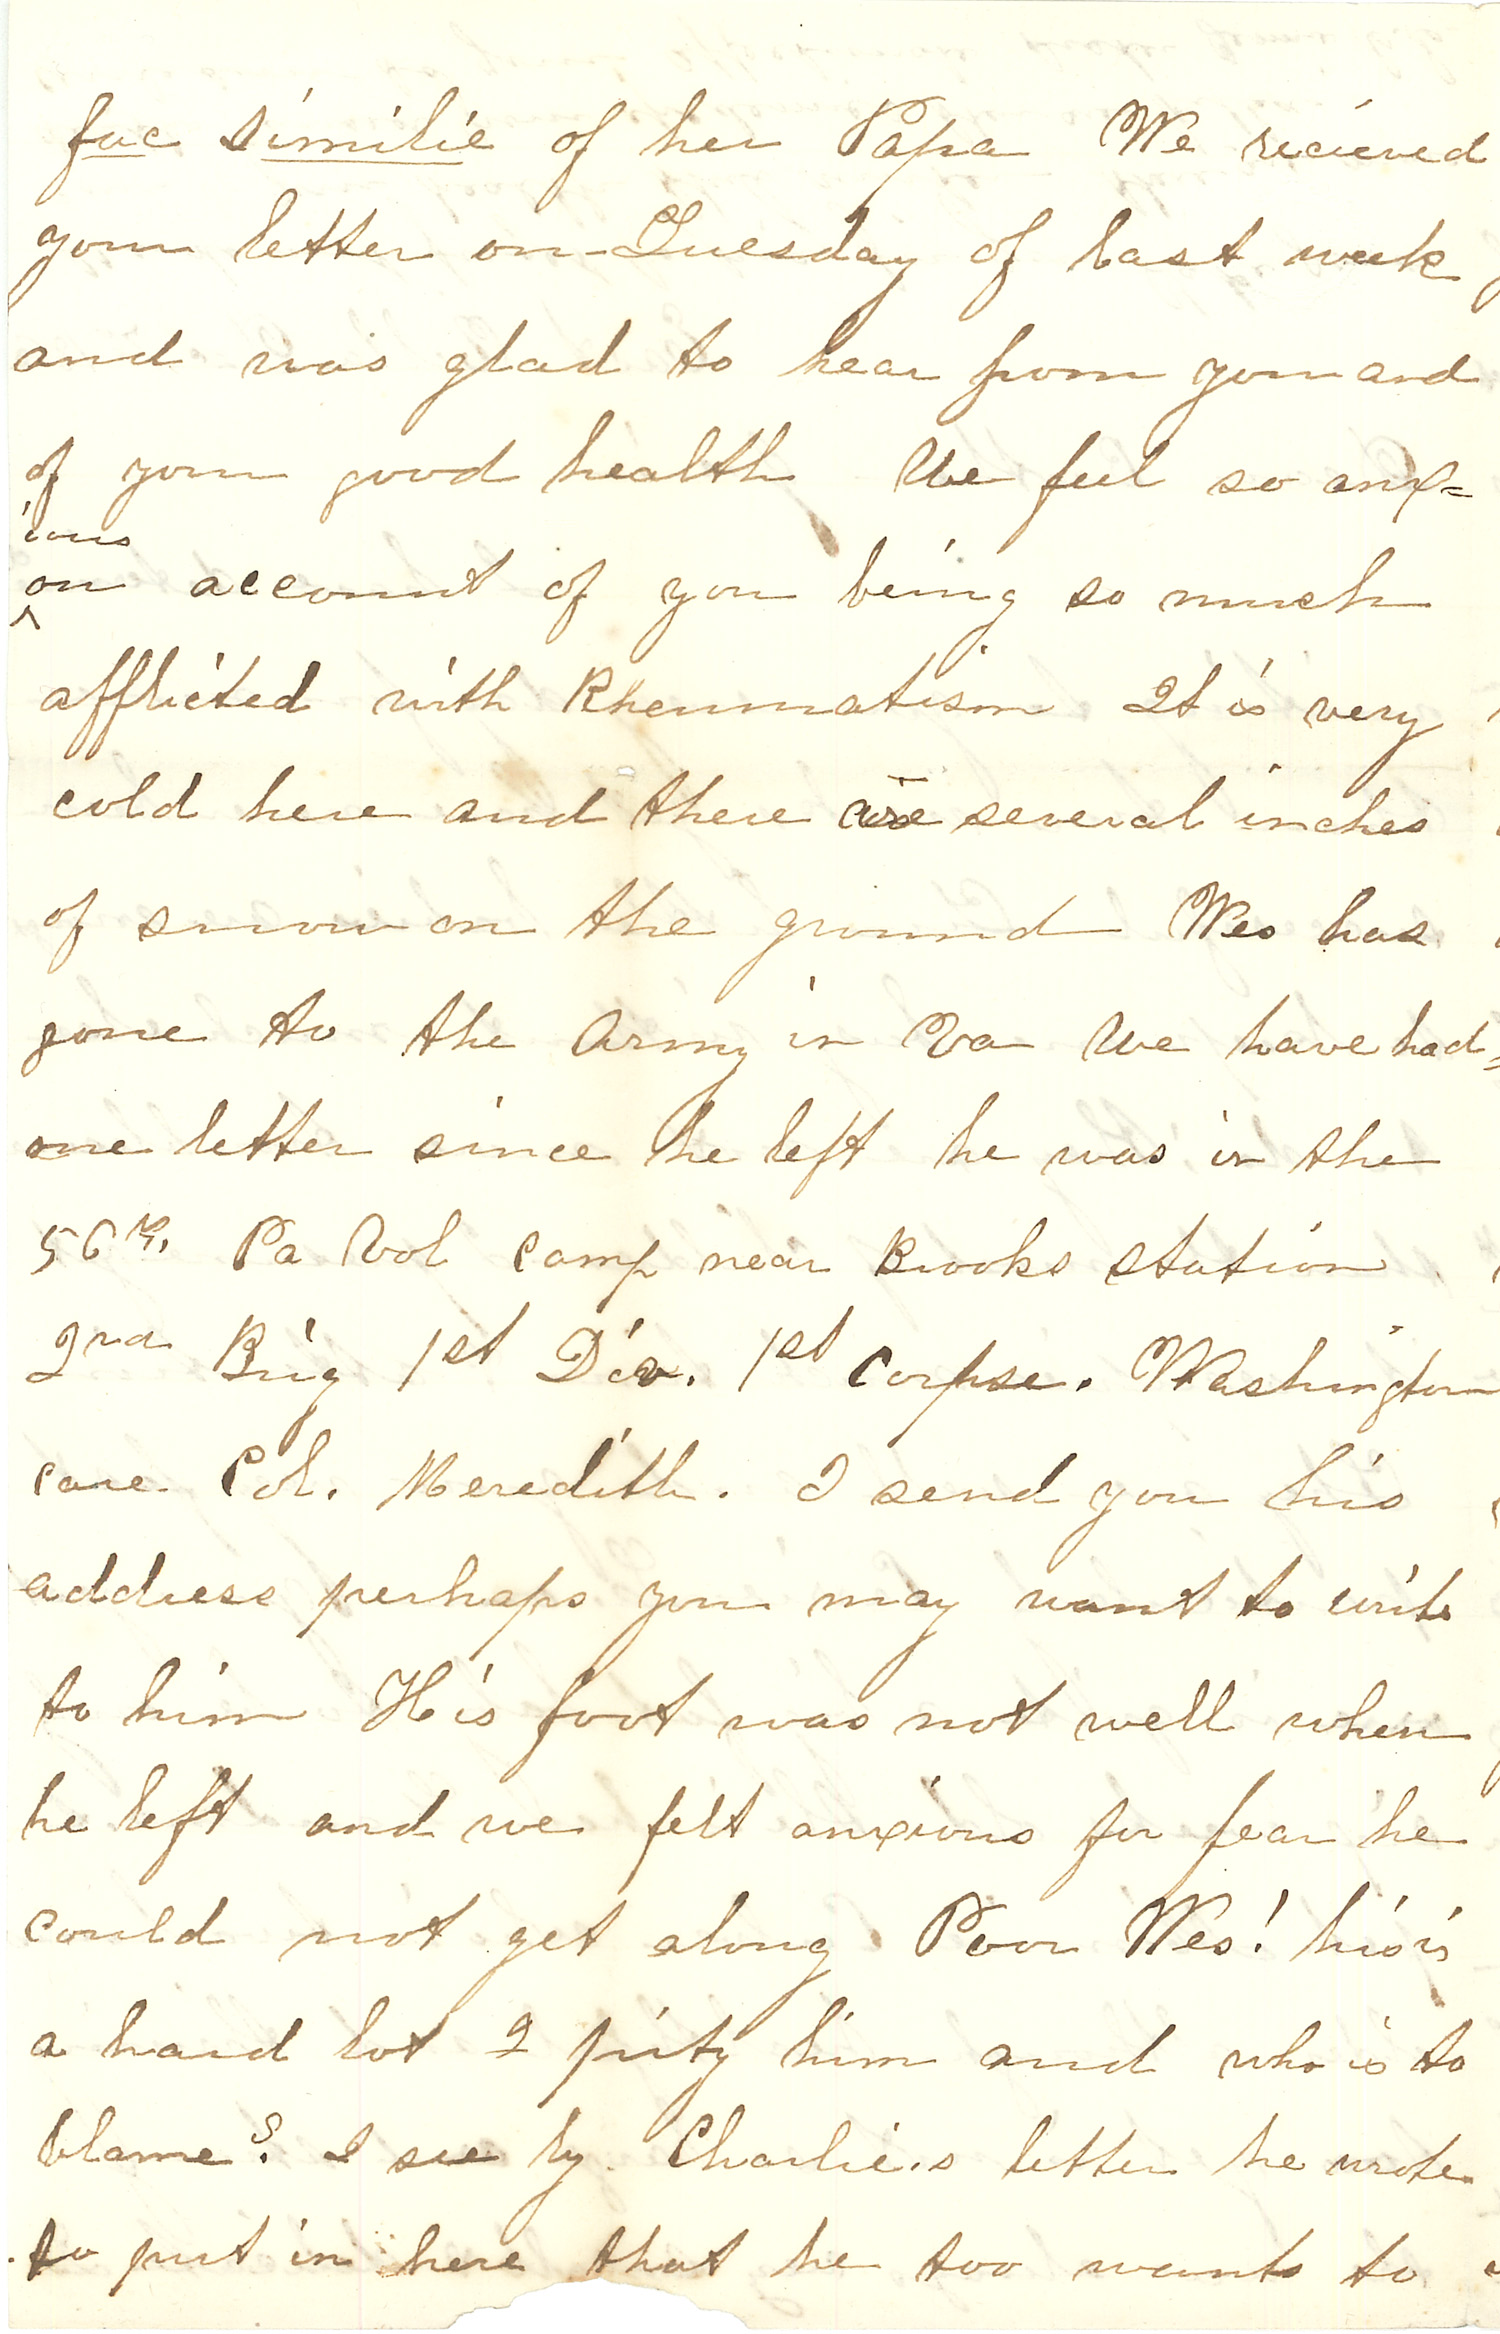 Joseph Culver Letter, December 7, 1863, Page 2